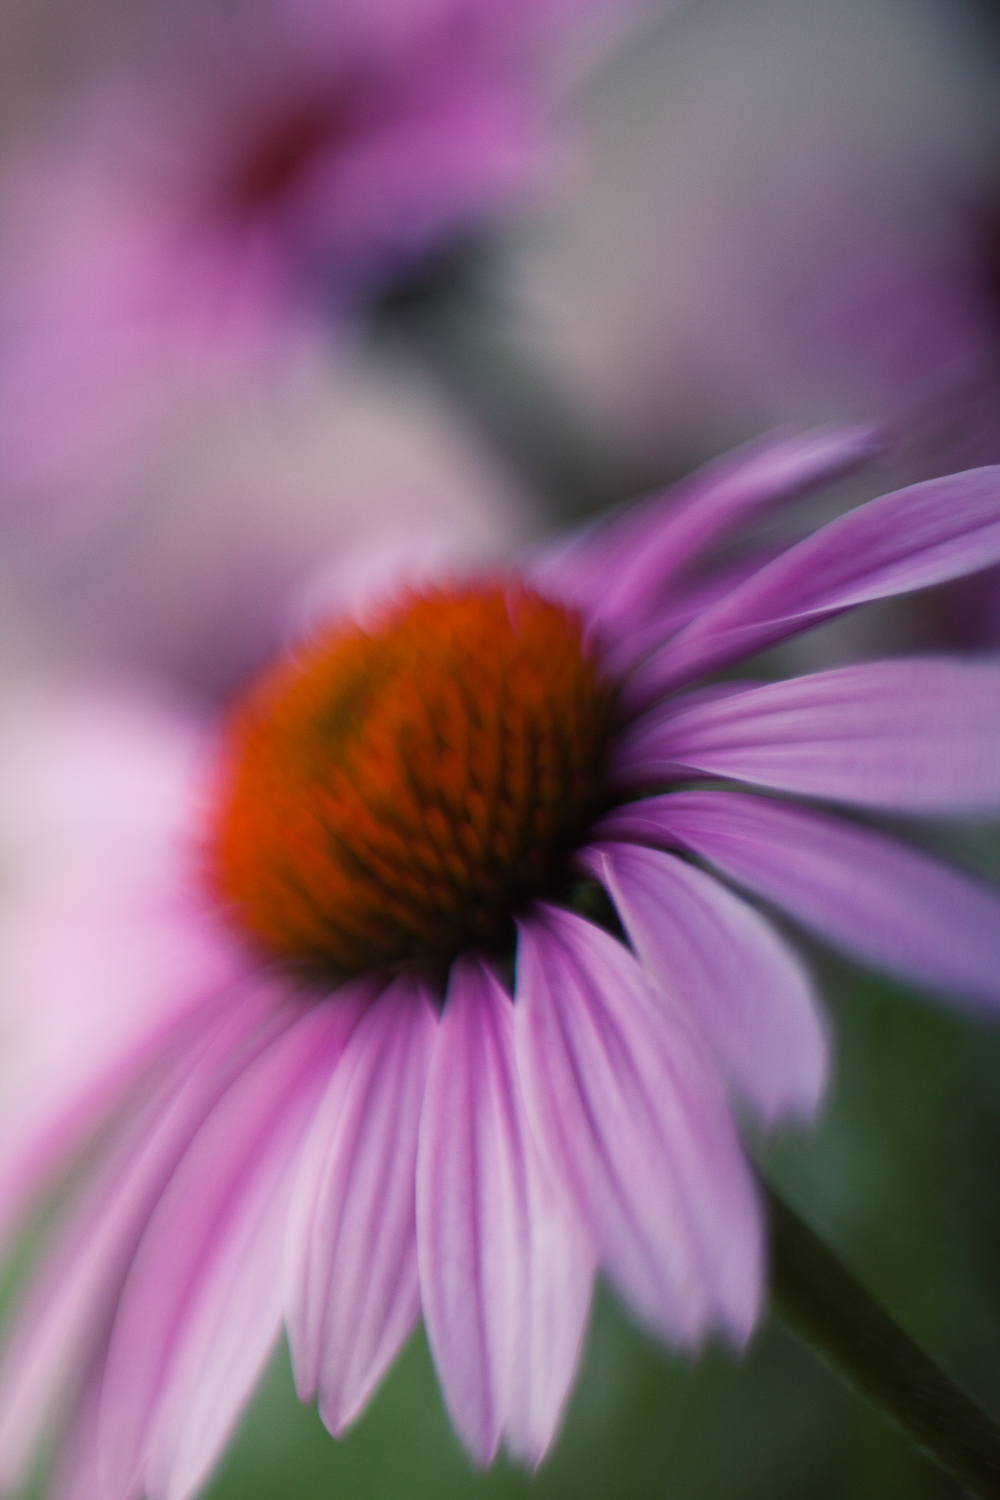 July-Blog-Macro-Photography-Flowers-Ann-Arbor-Jaymes-Dempsey-18.JPG